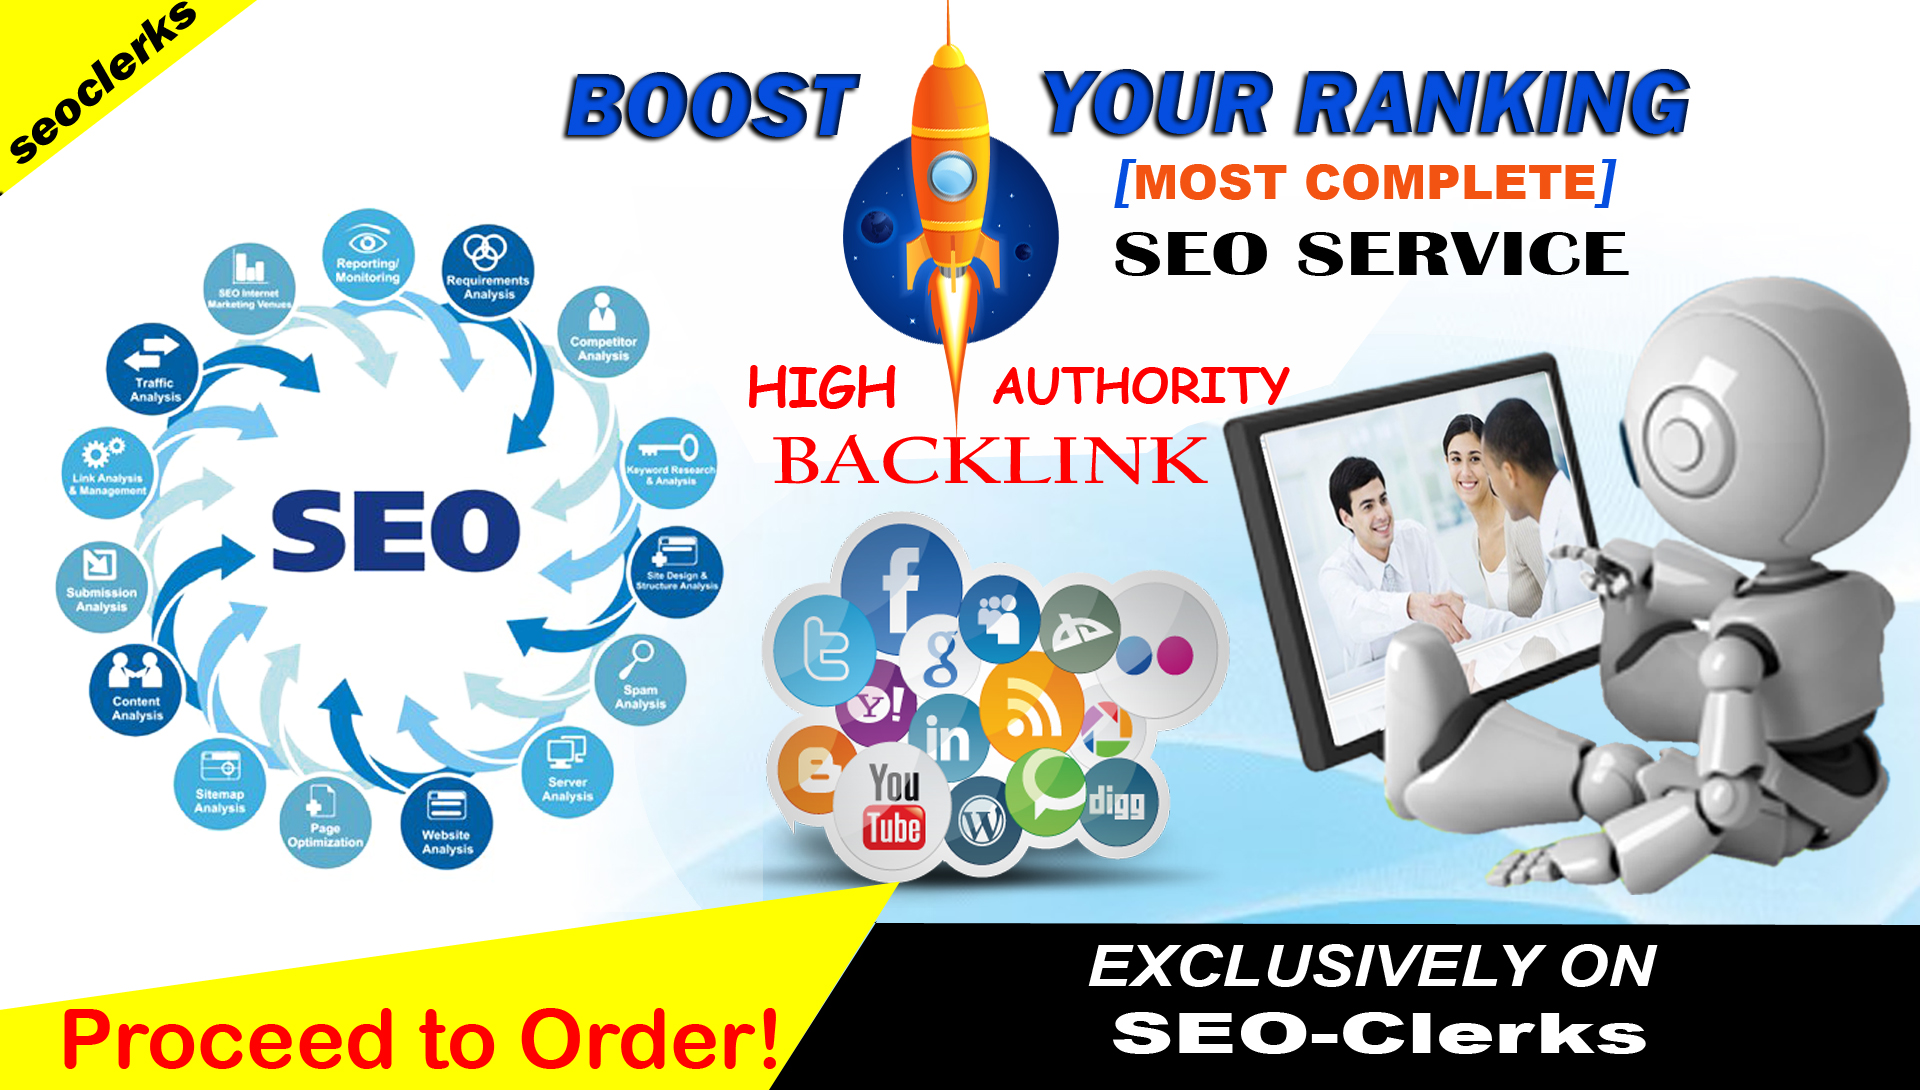 Rank High On Google With 200 Manual White Hat SEO Backlink